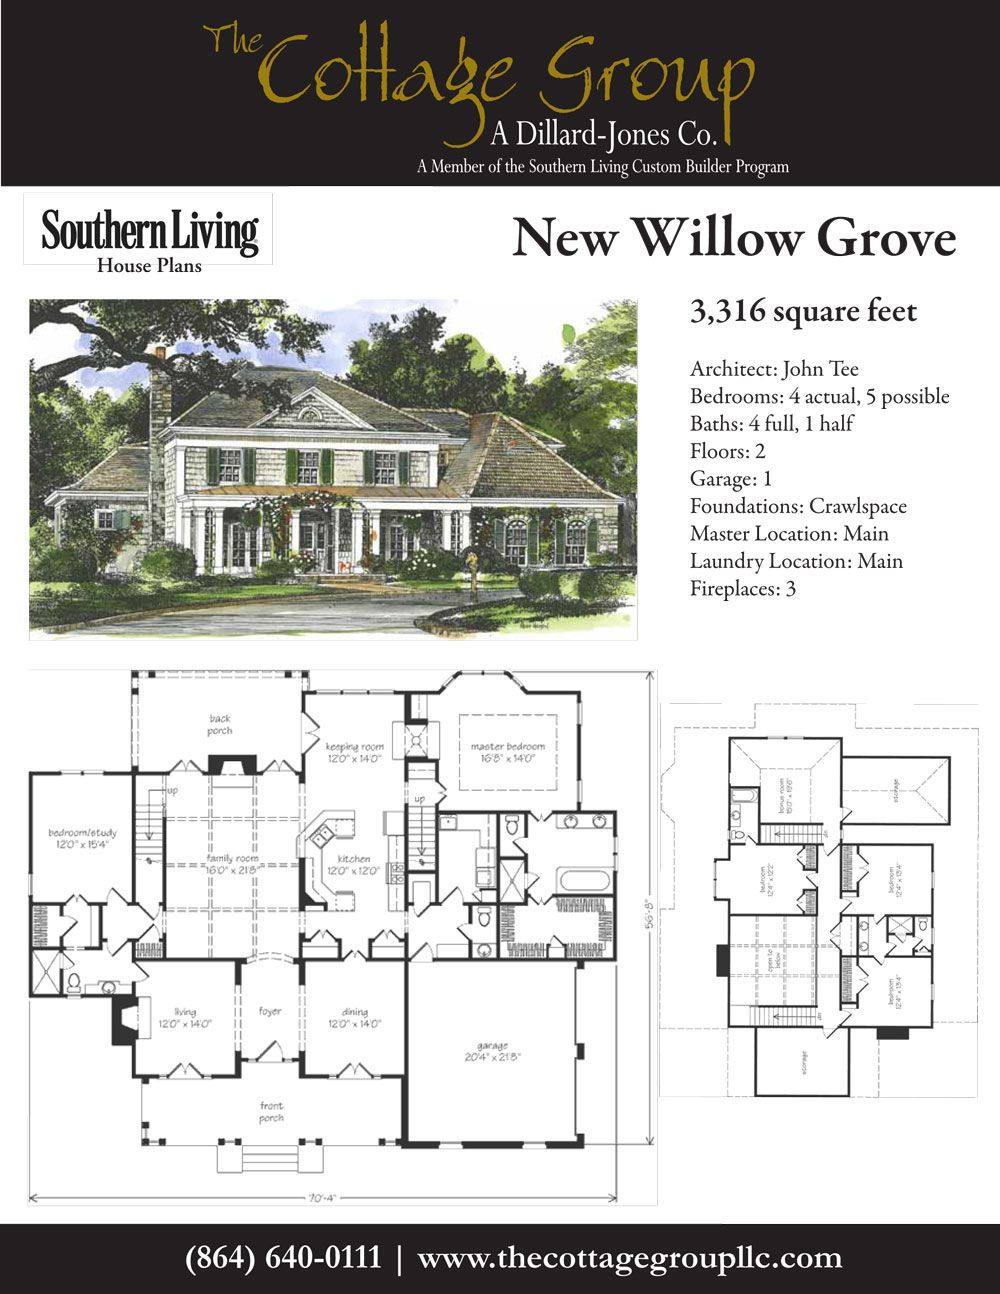 New willow grove the cottage group southern living for The willow house plan